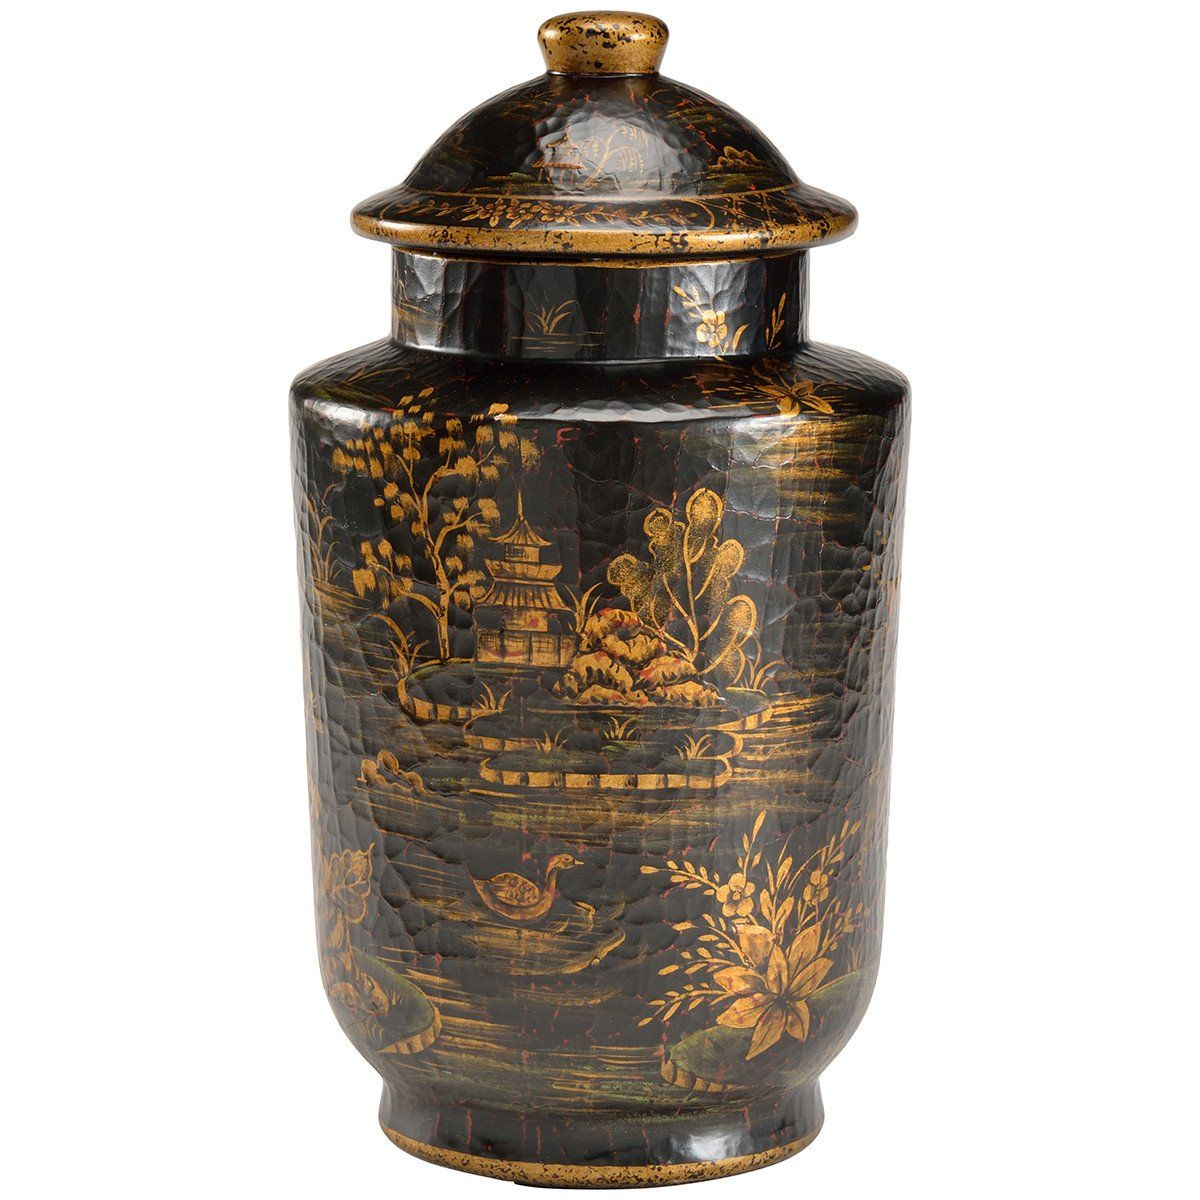 Chelsea House Royal Garden Covered Jar | Royal garden, Chelsea and Jar